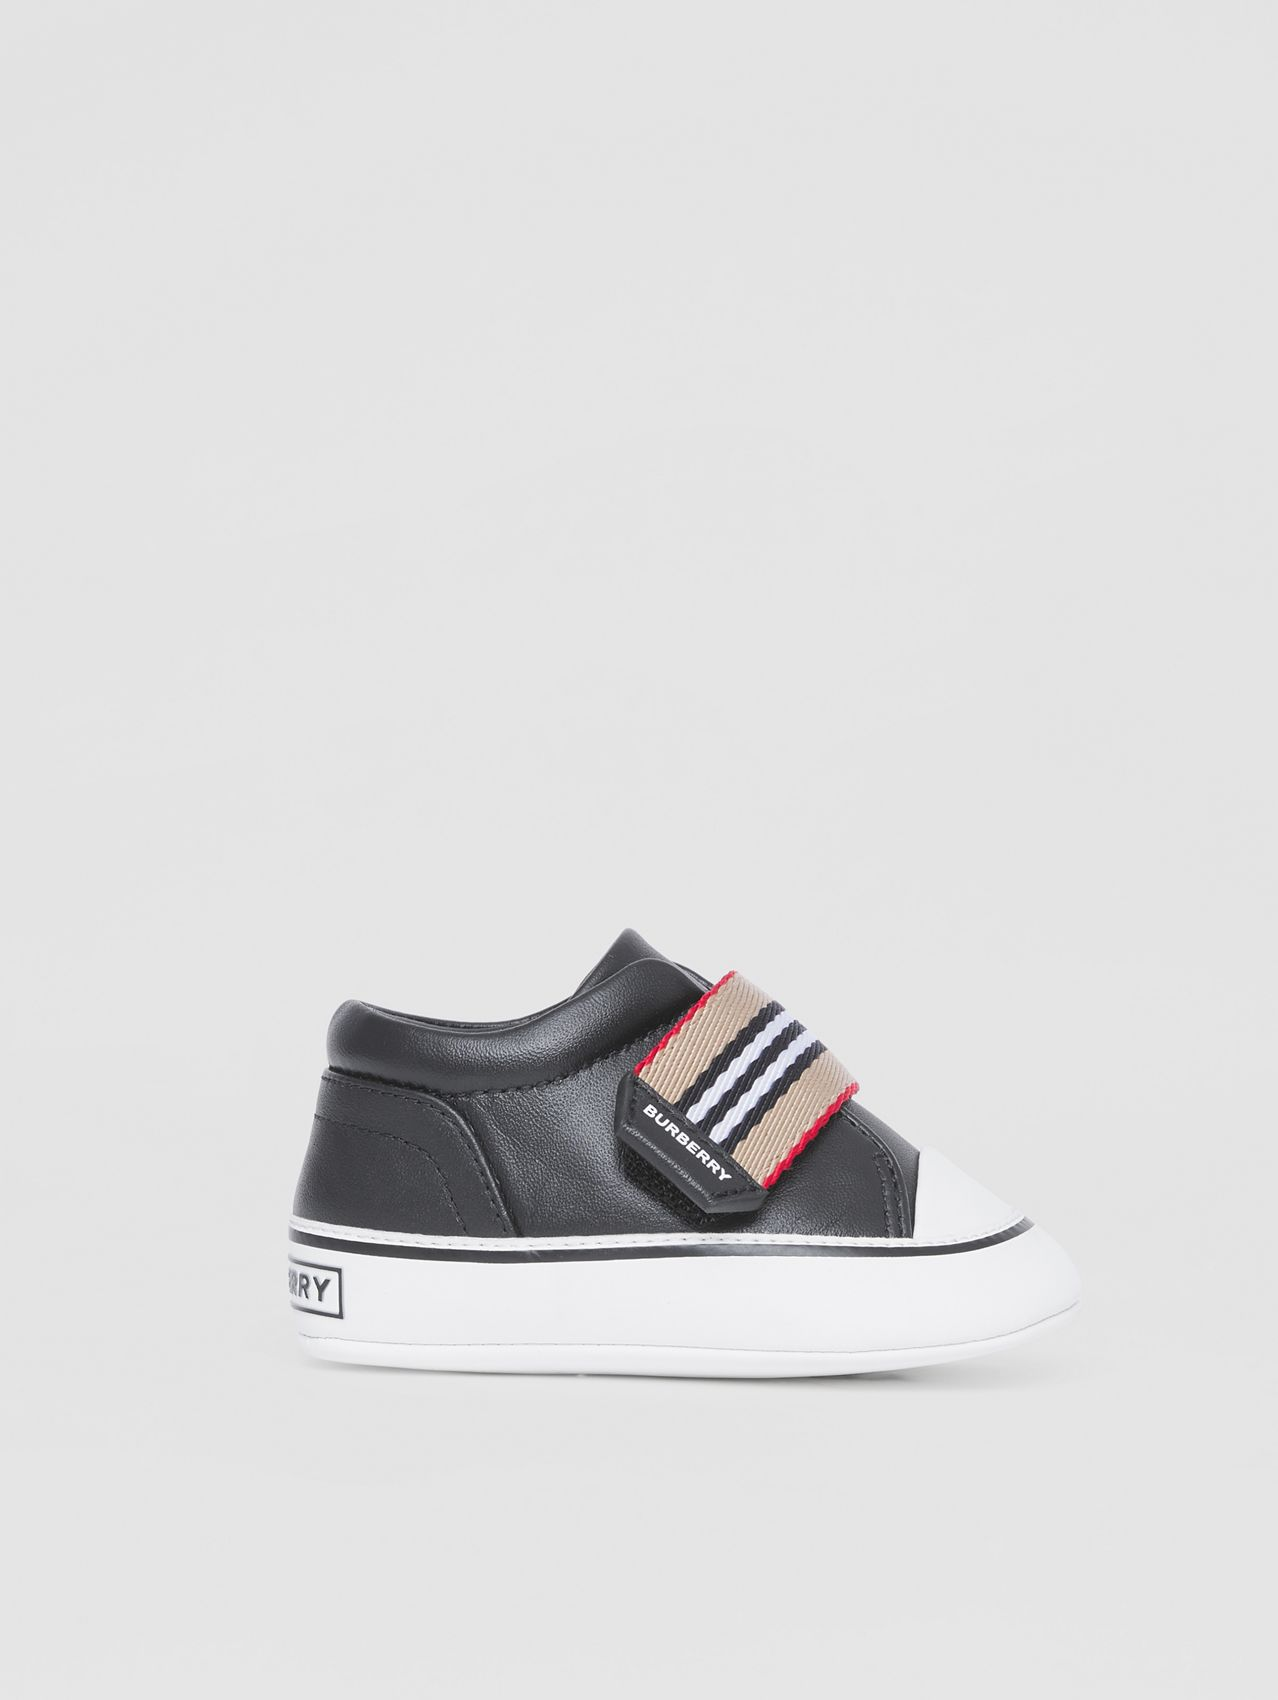 Icon Stripe Strap Slip-on Sneakers in Black